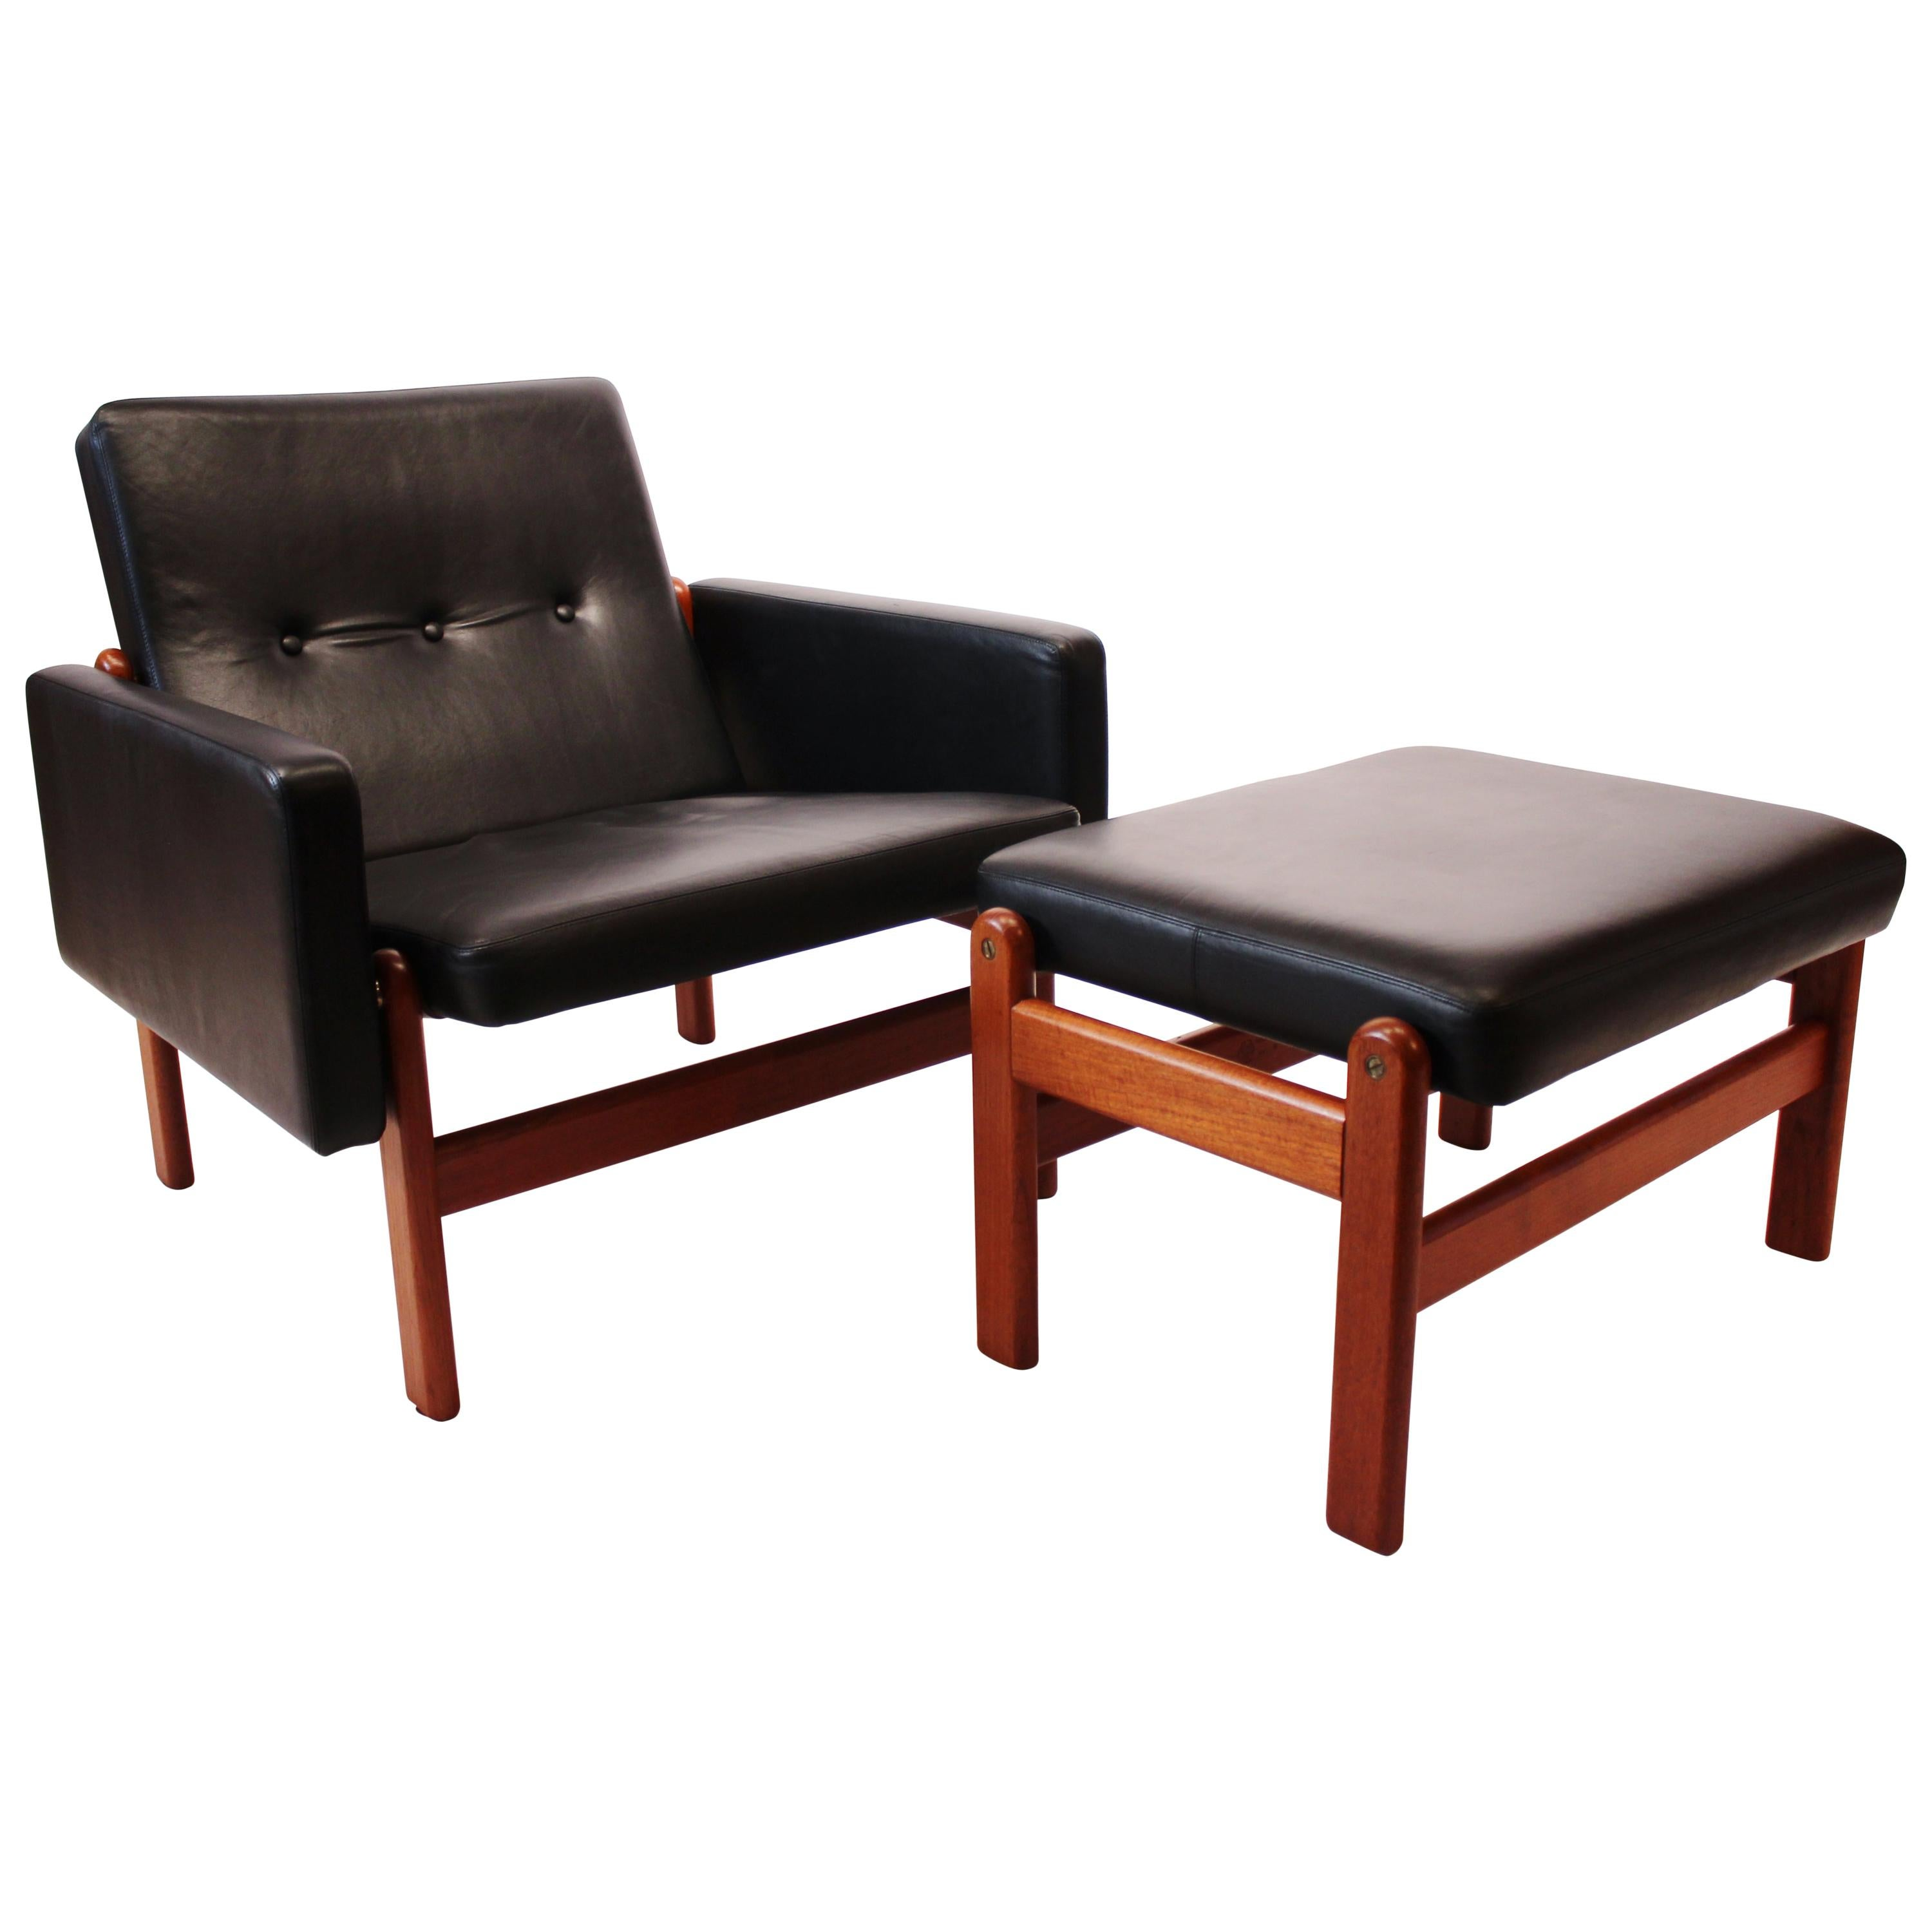 Easy Chair with Stool, Black Leather and Teak, by Jørgen Bækmark and FDB, 1960s